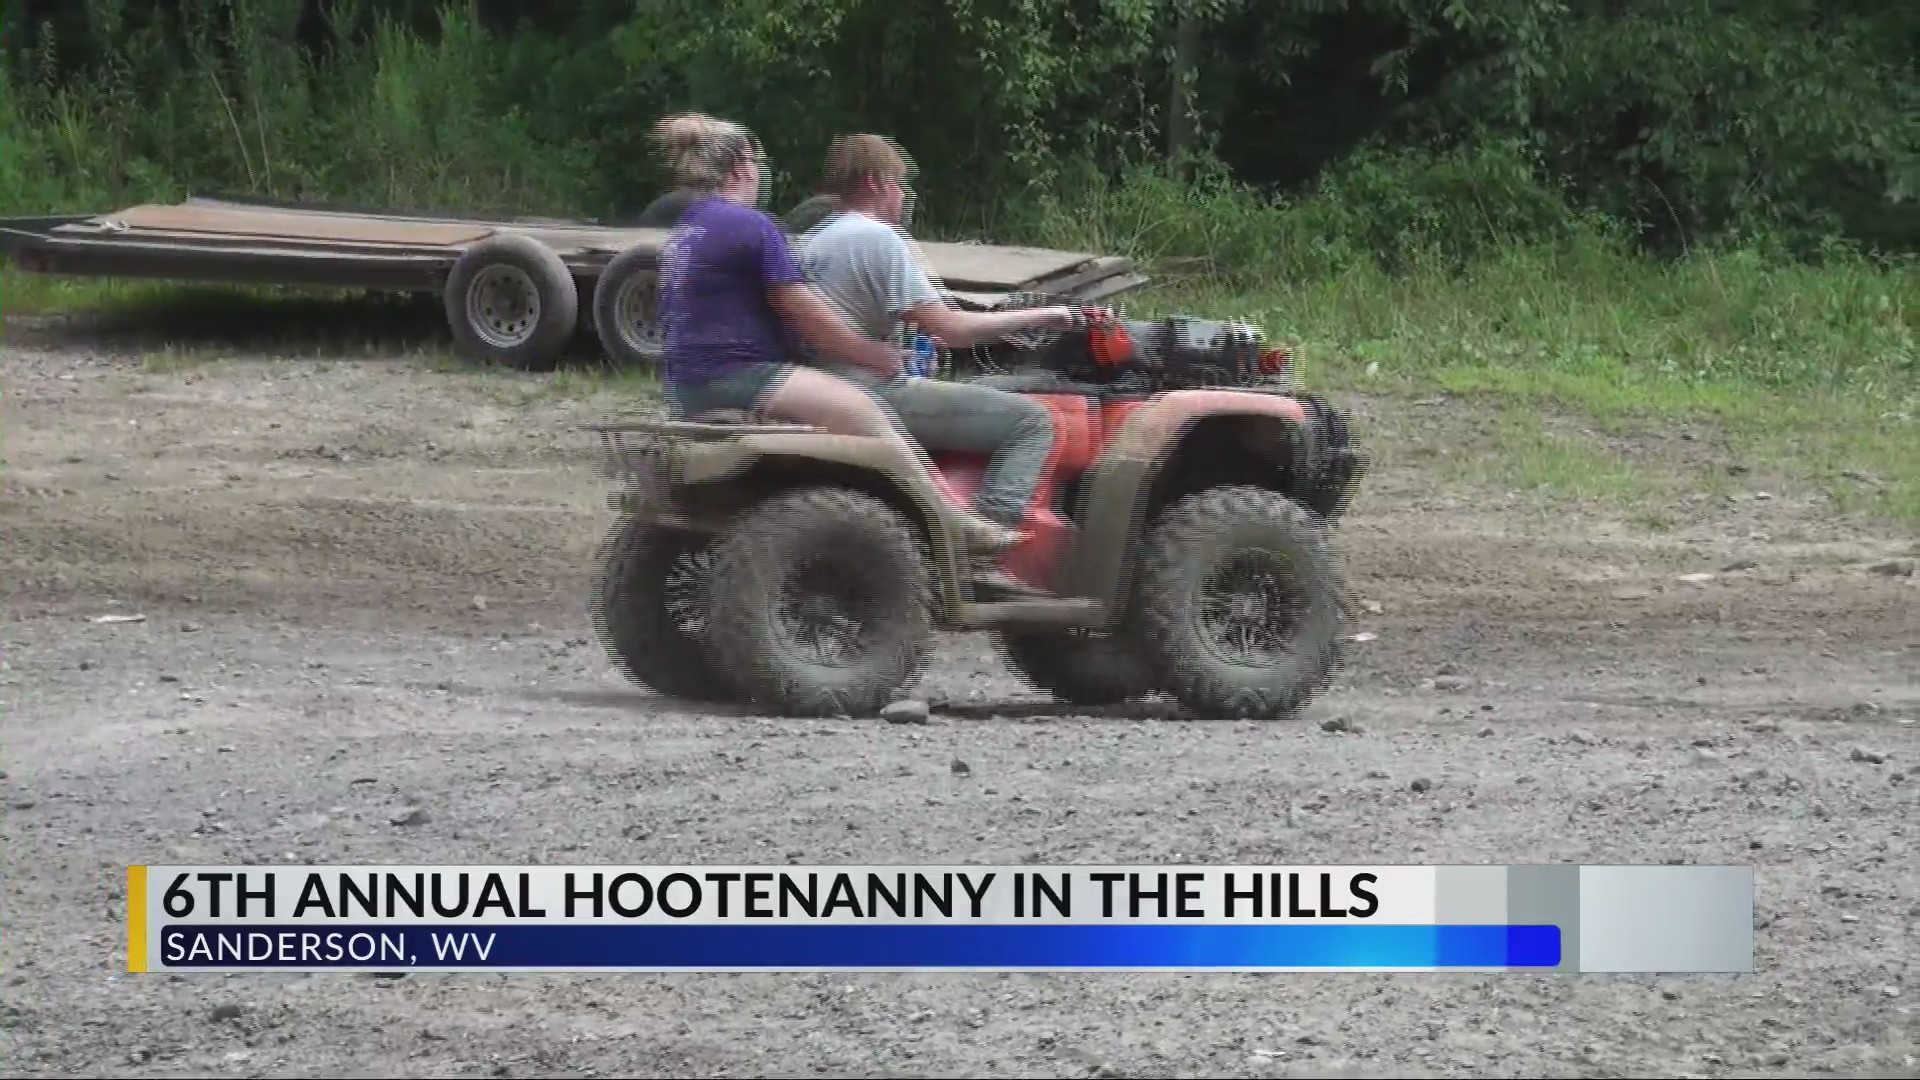 6th Annual Hootenanny in the Hills to Benefit Pinch Fire Department